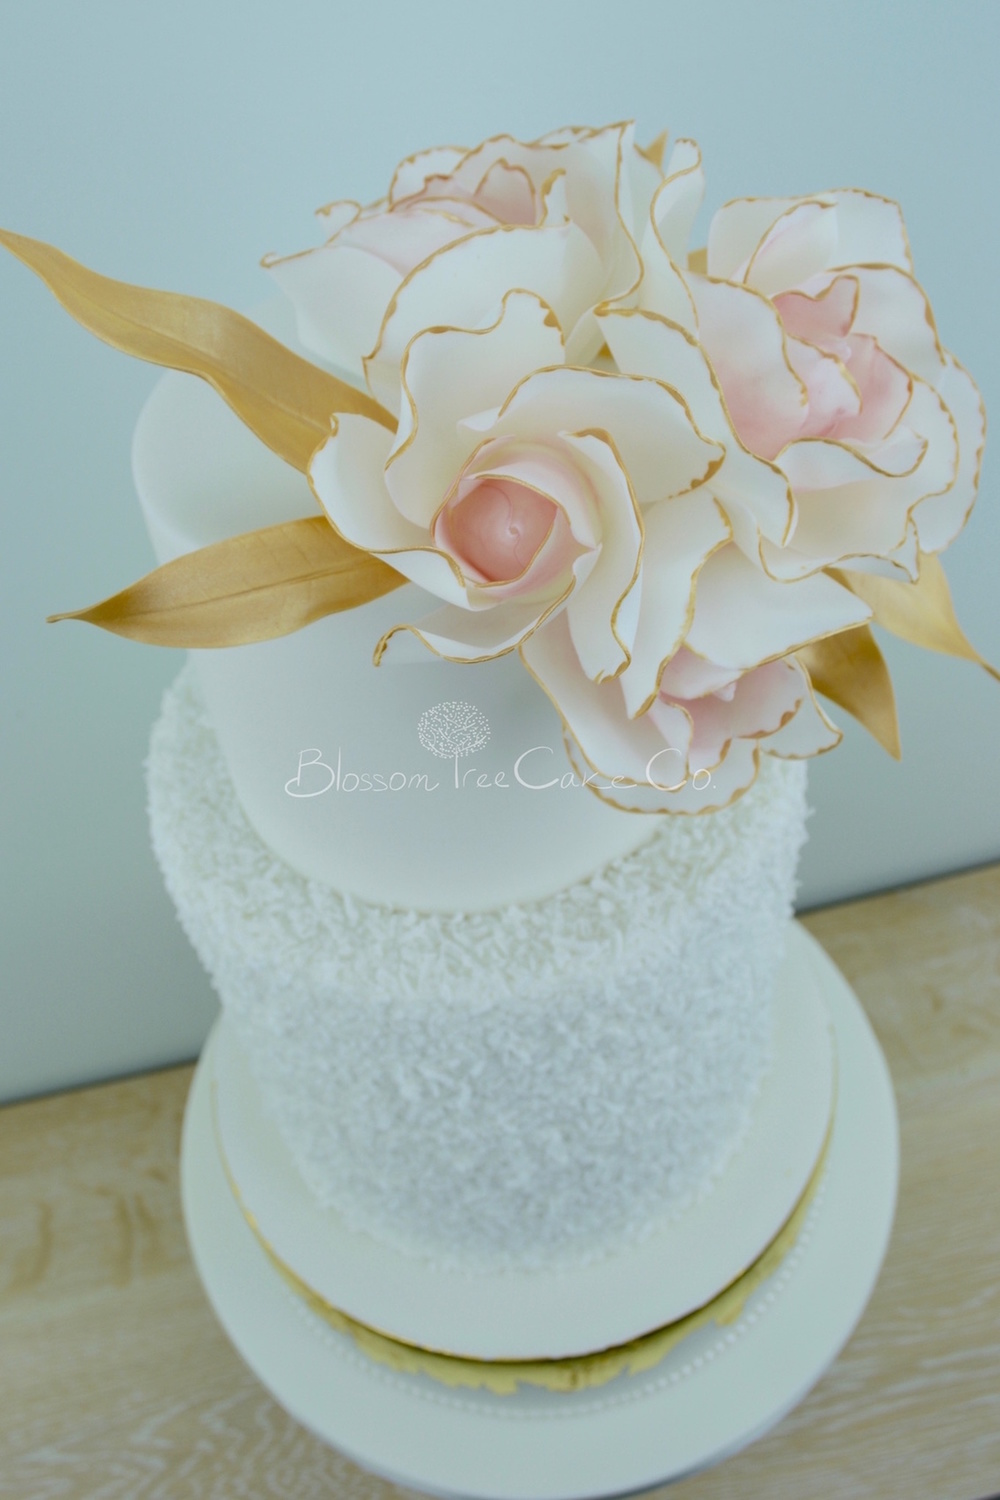 Blush Roses with Gold Leaf wedding cake by Blossom Tree Cake Company Harrogate North Yorkshire